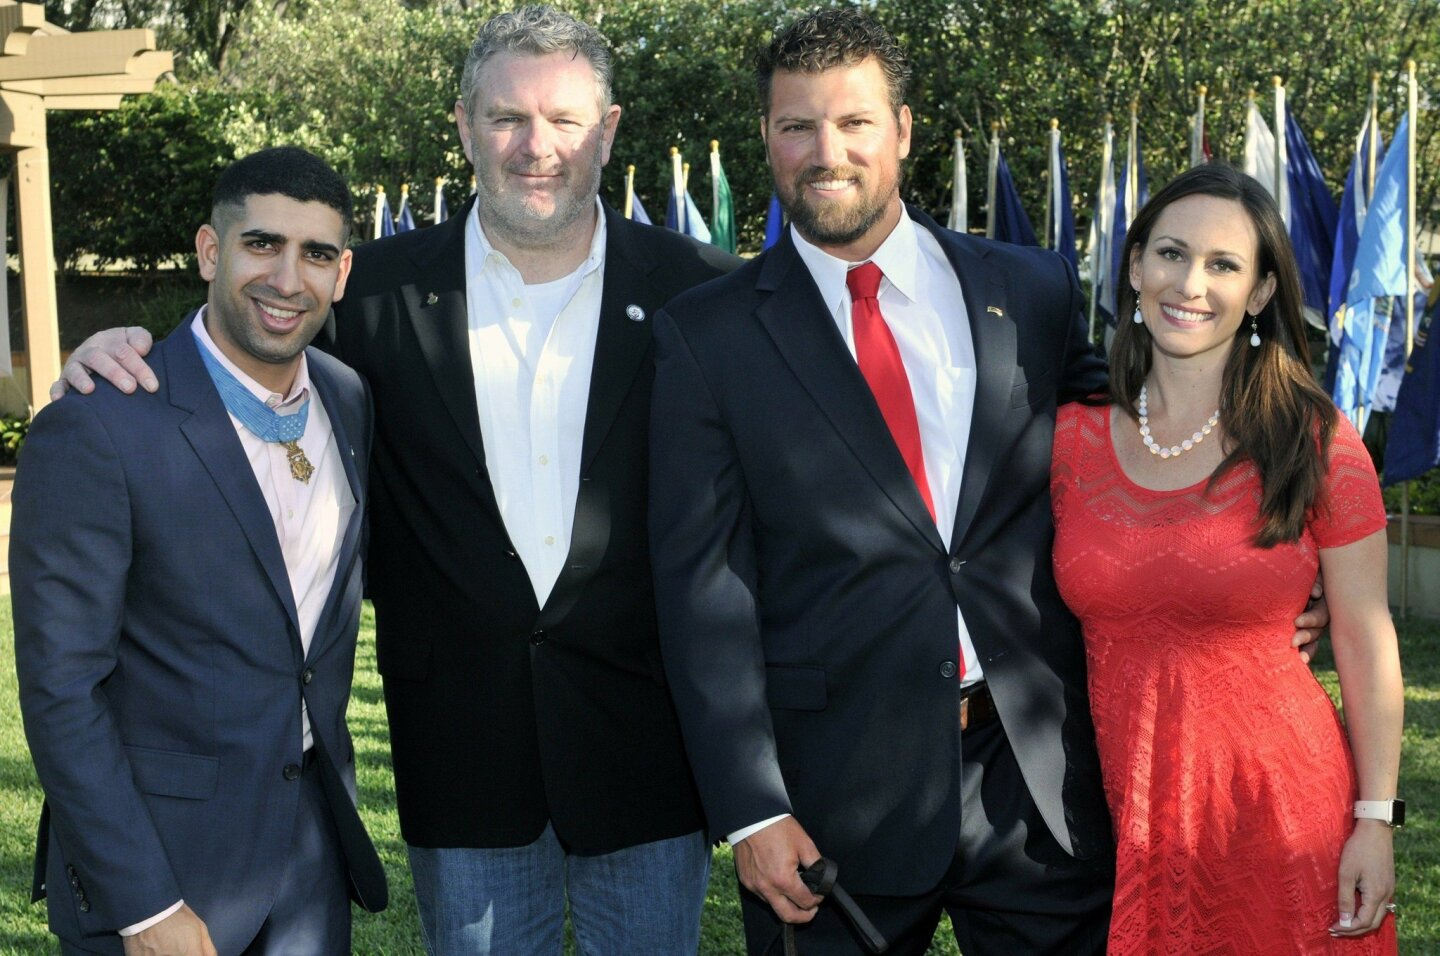 Medal of Honor recipient Capt. Florent Groberg U.S. Army retired, Veterans 360 CEO Rick Collins, Ranger Capt. Ben Brown U.S. Army retired, gala Chair Chondra Brown